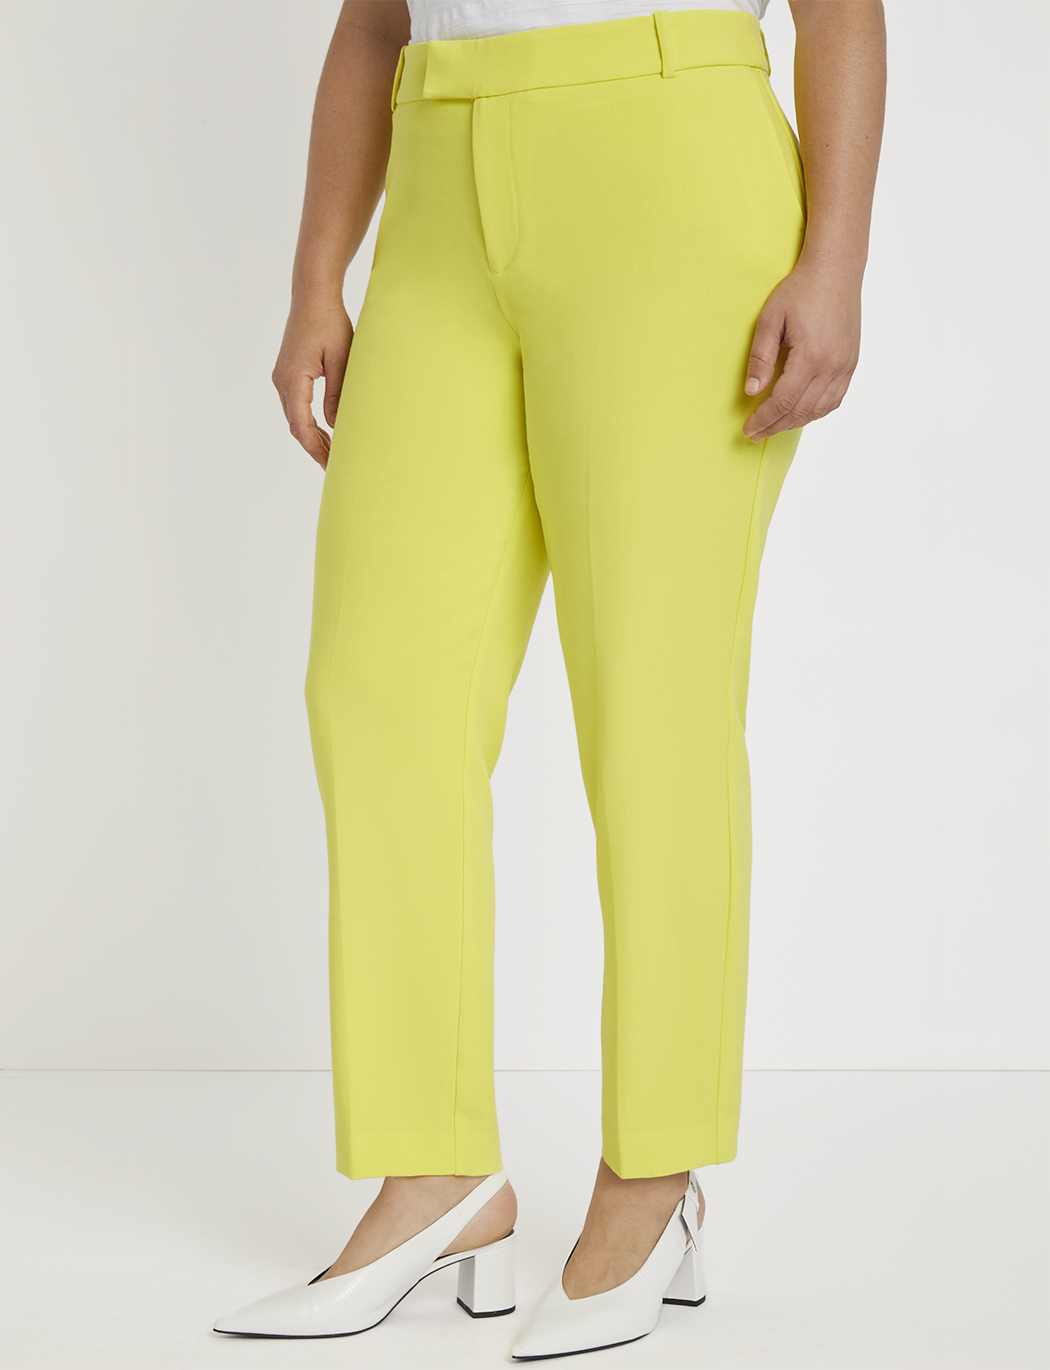 Tailored Ankle Trouser